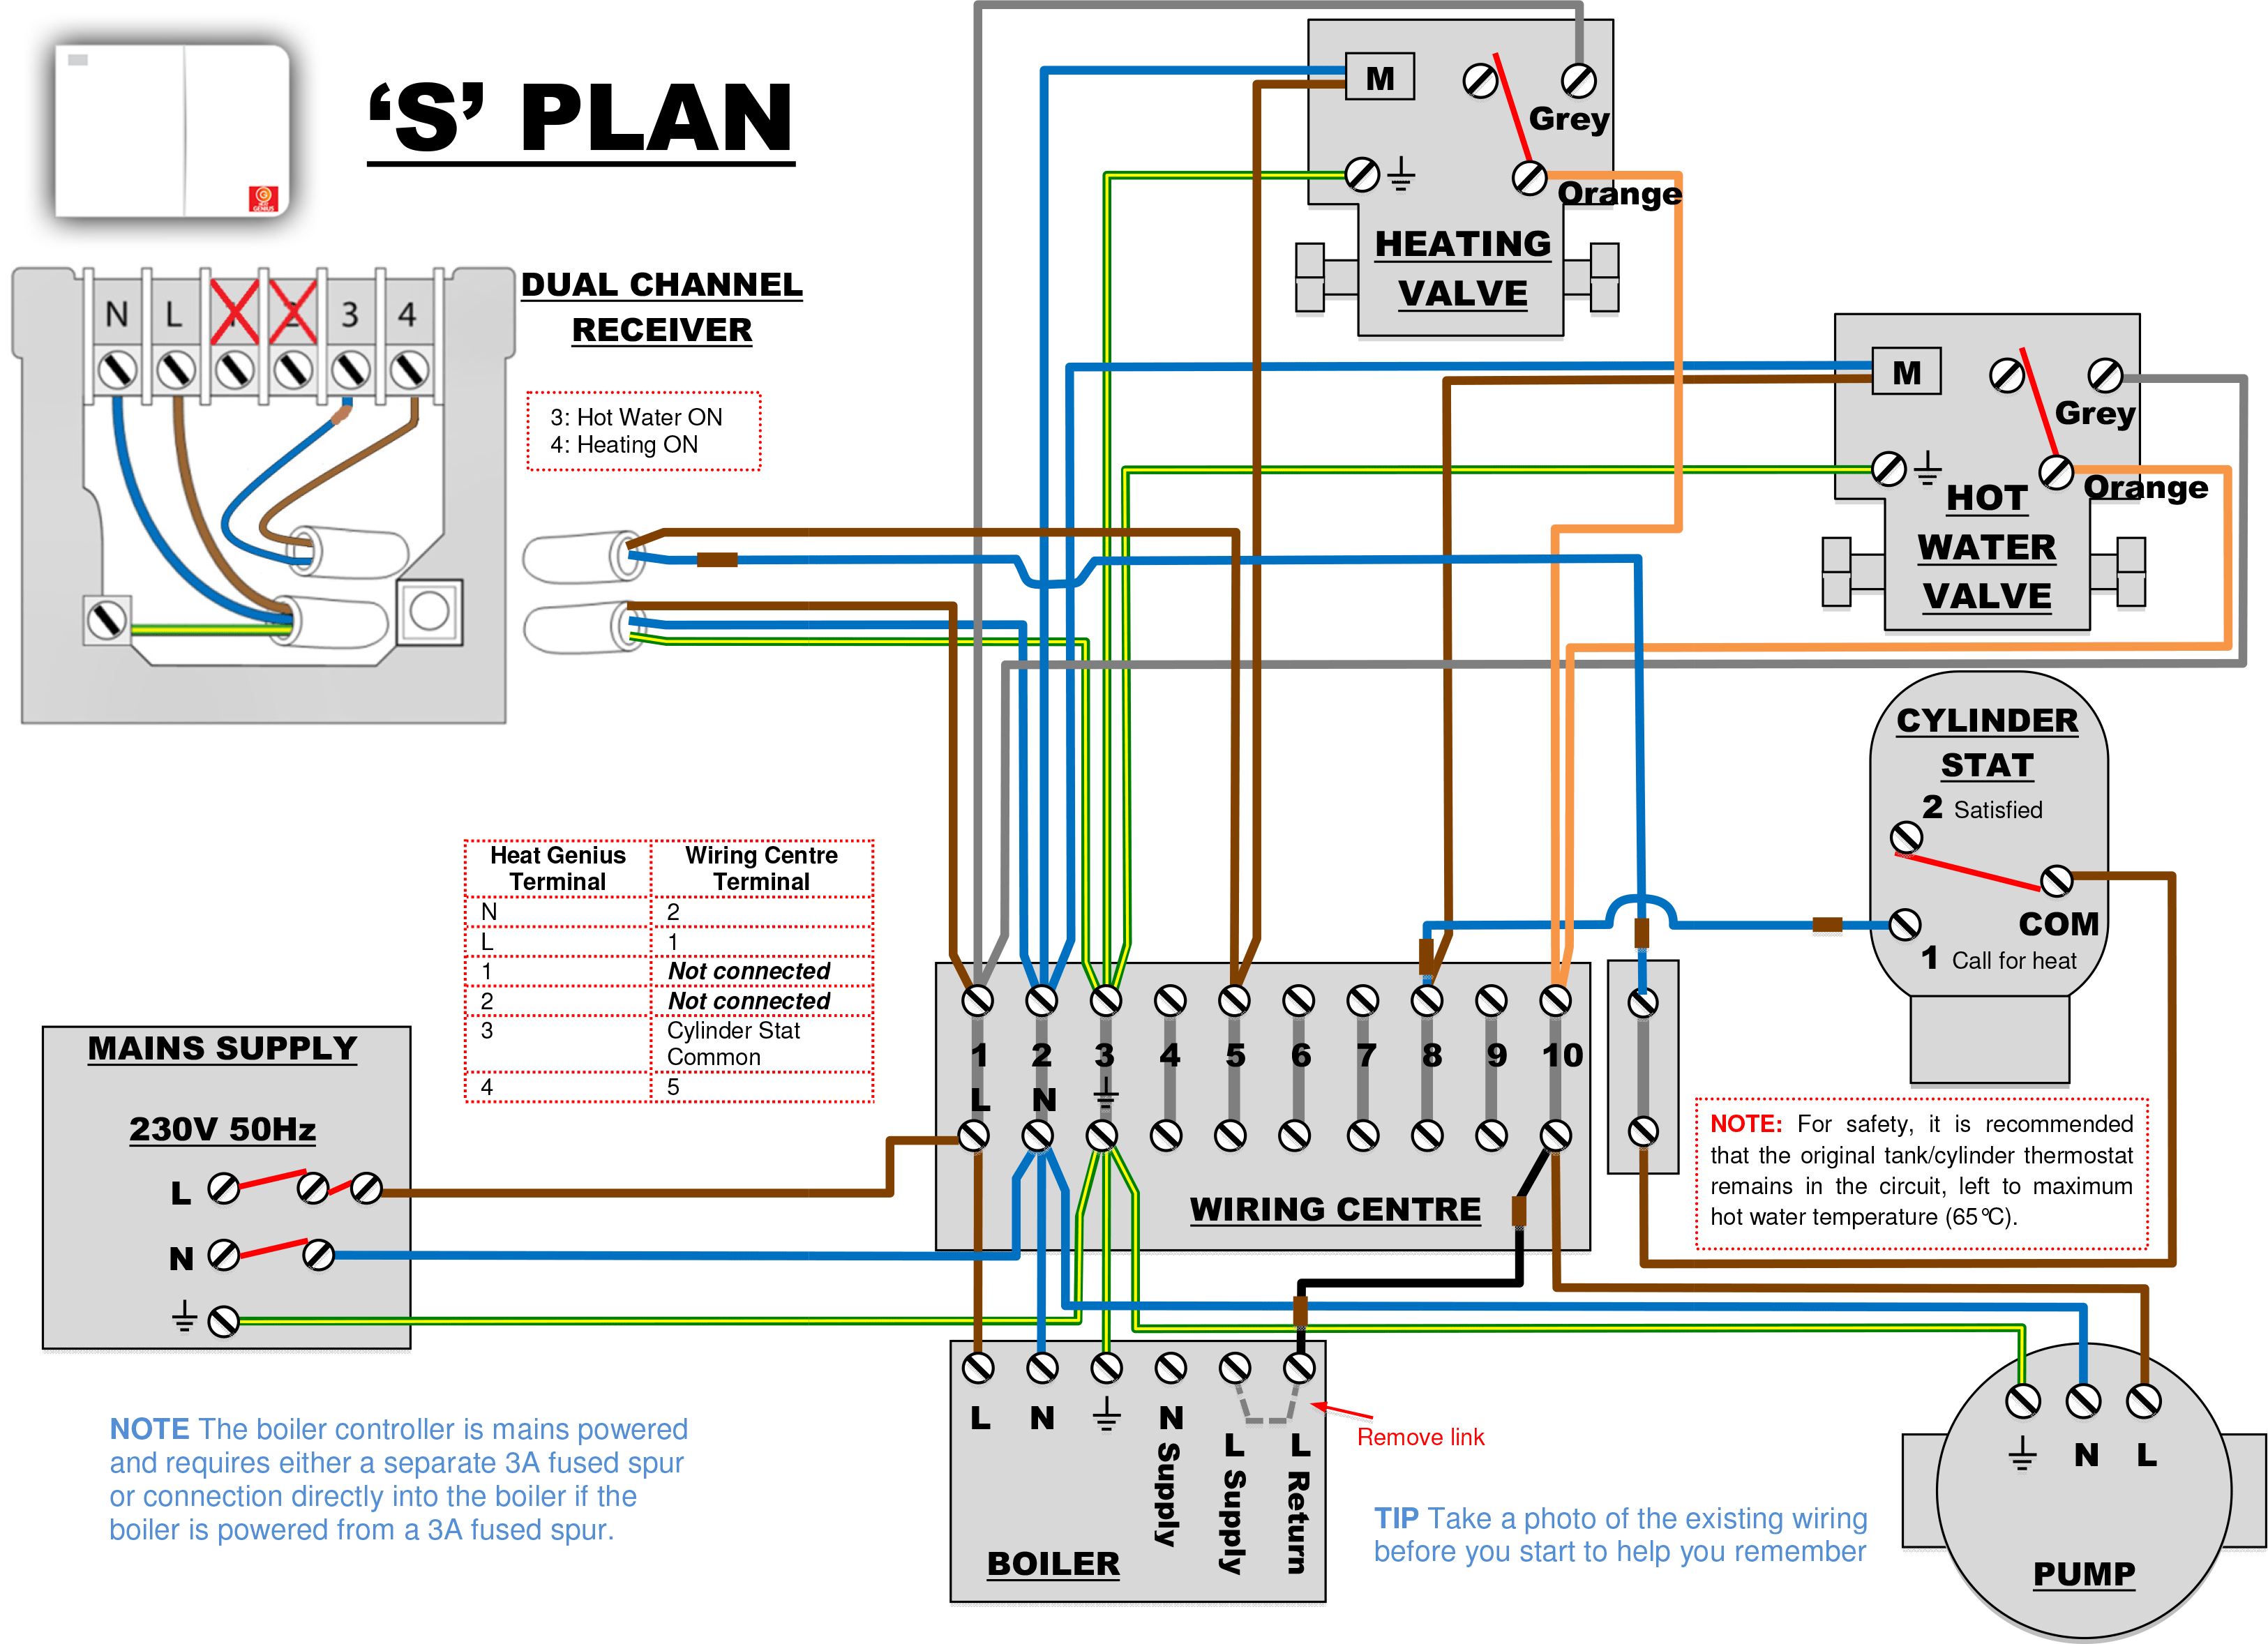 siemens g120 wiring diagram on images free download inside